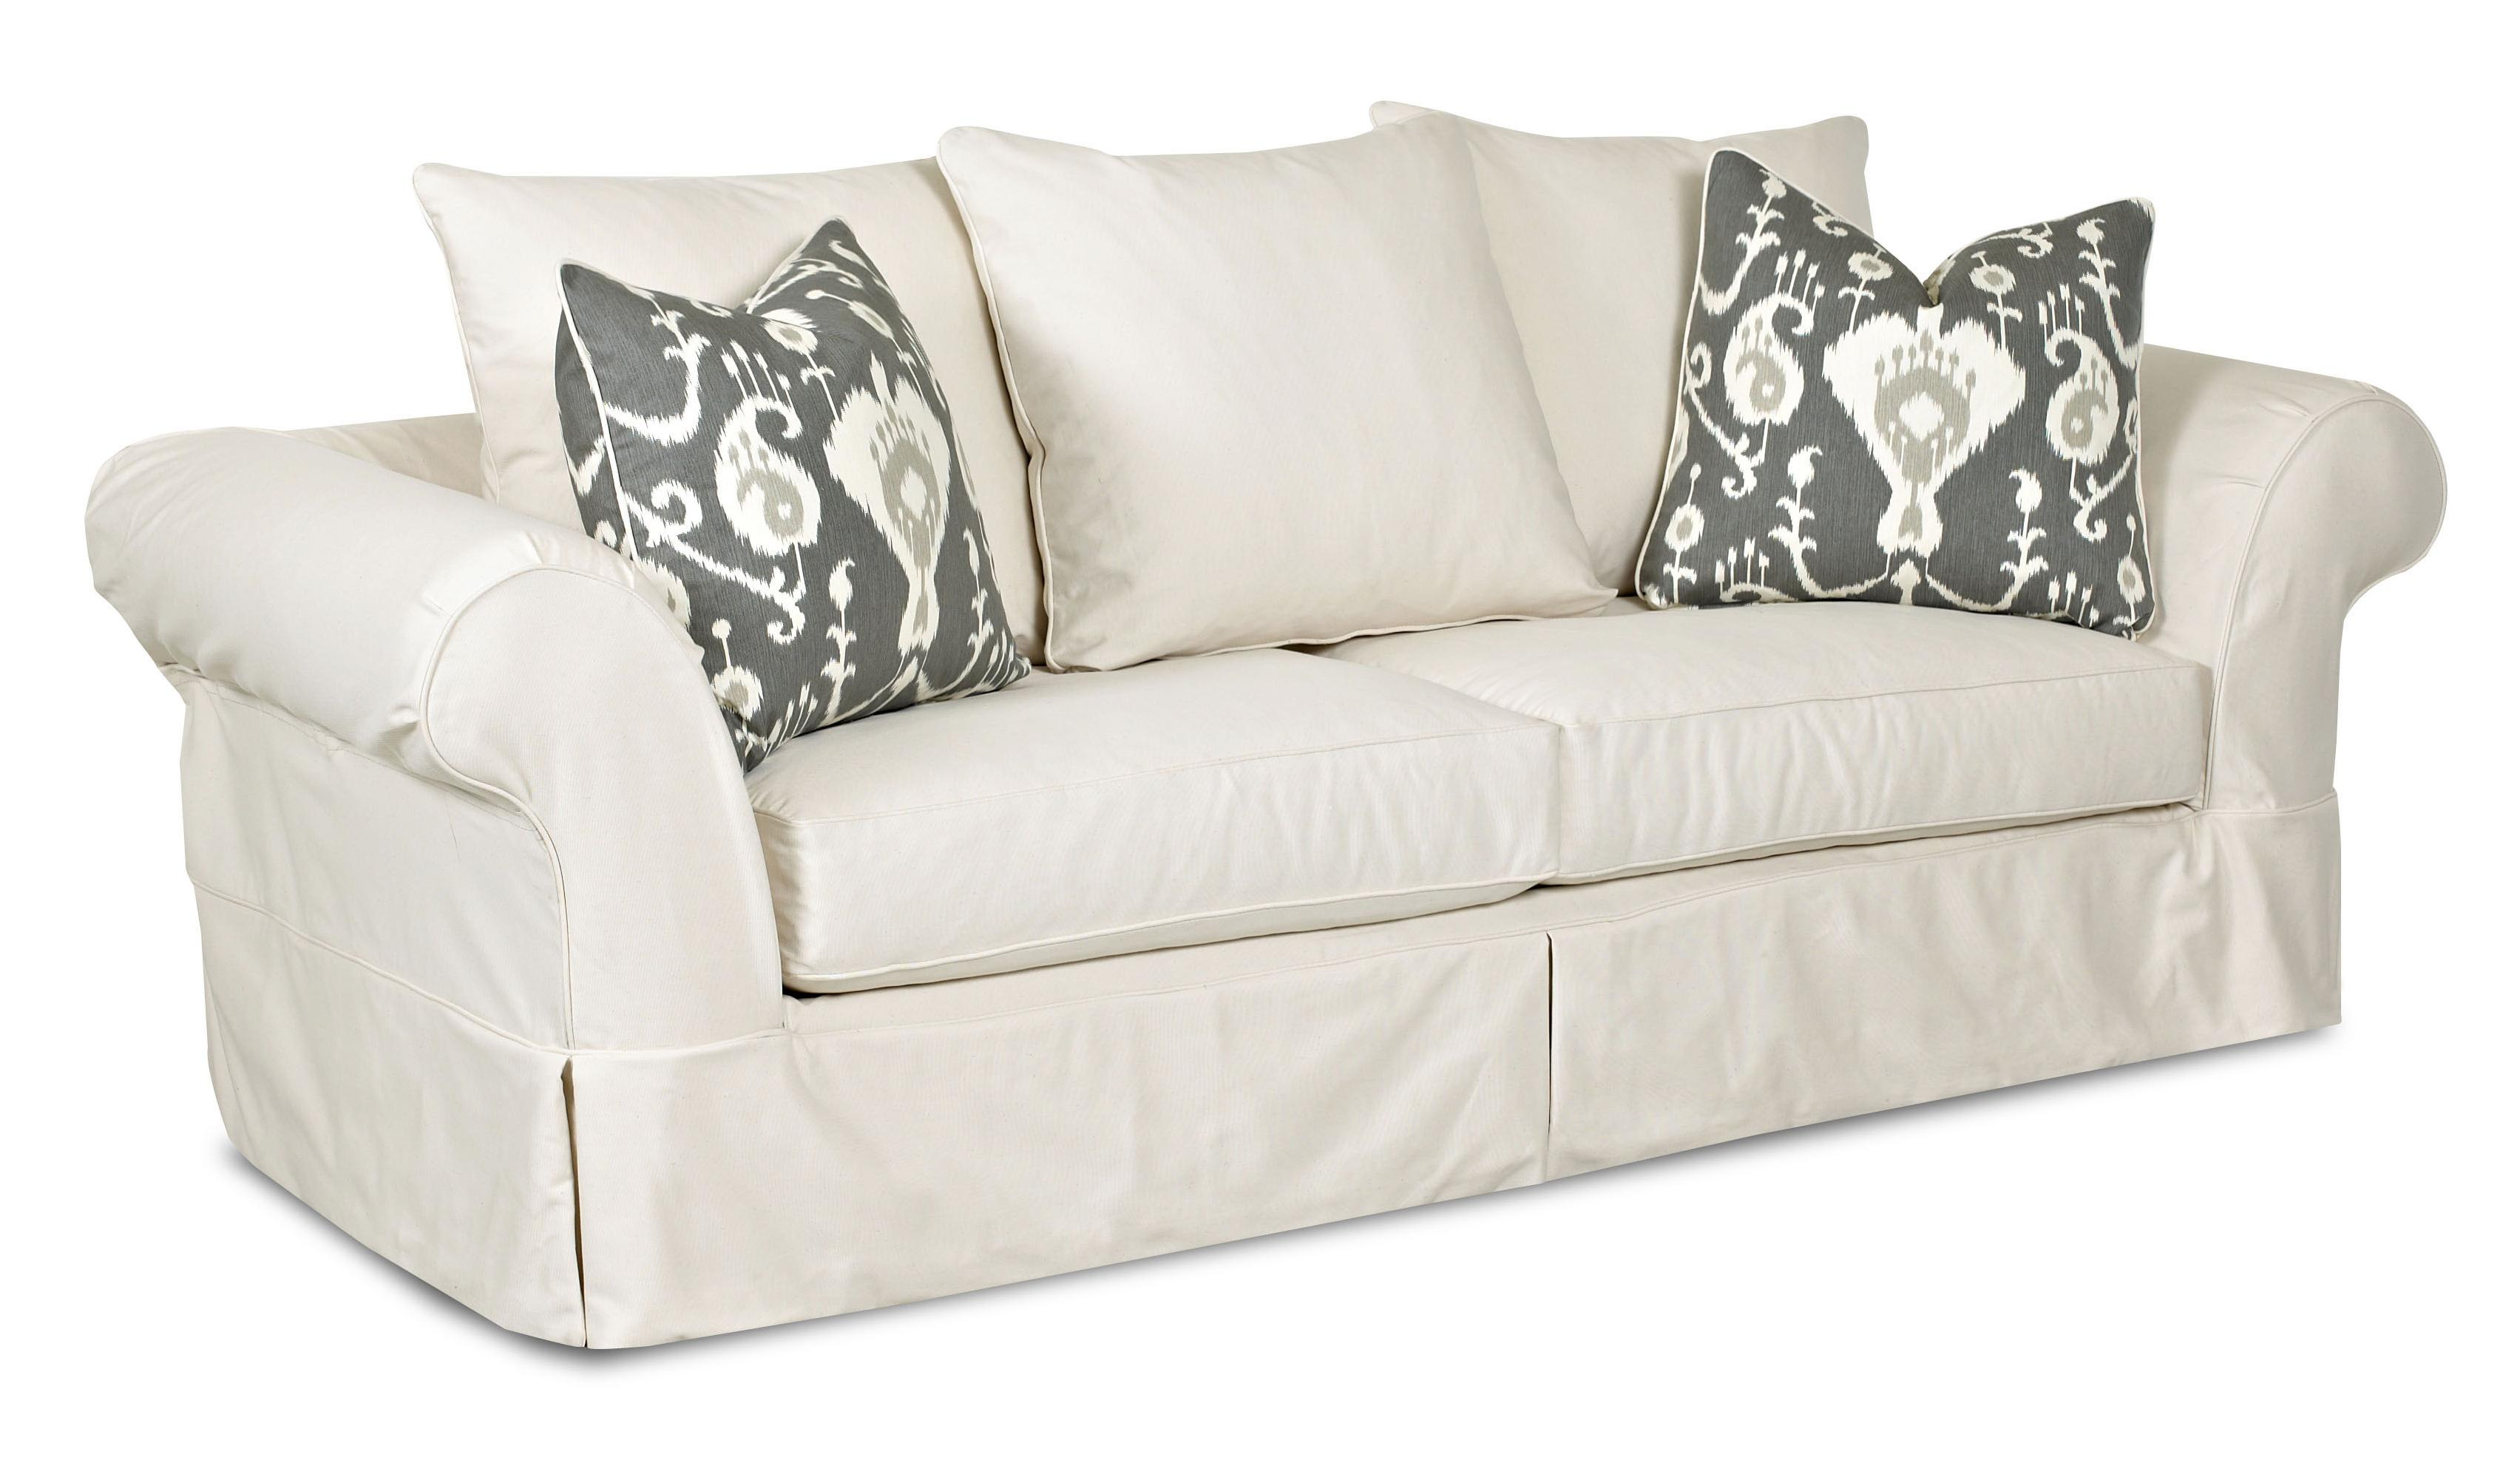 Klaussner Charleston Sofa With Scatterback Pillows And